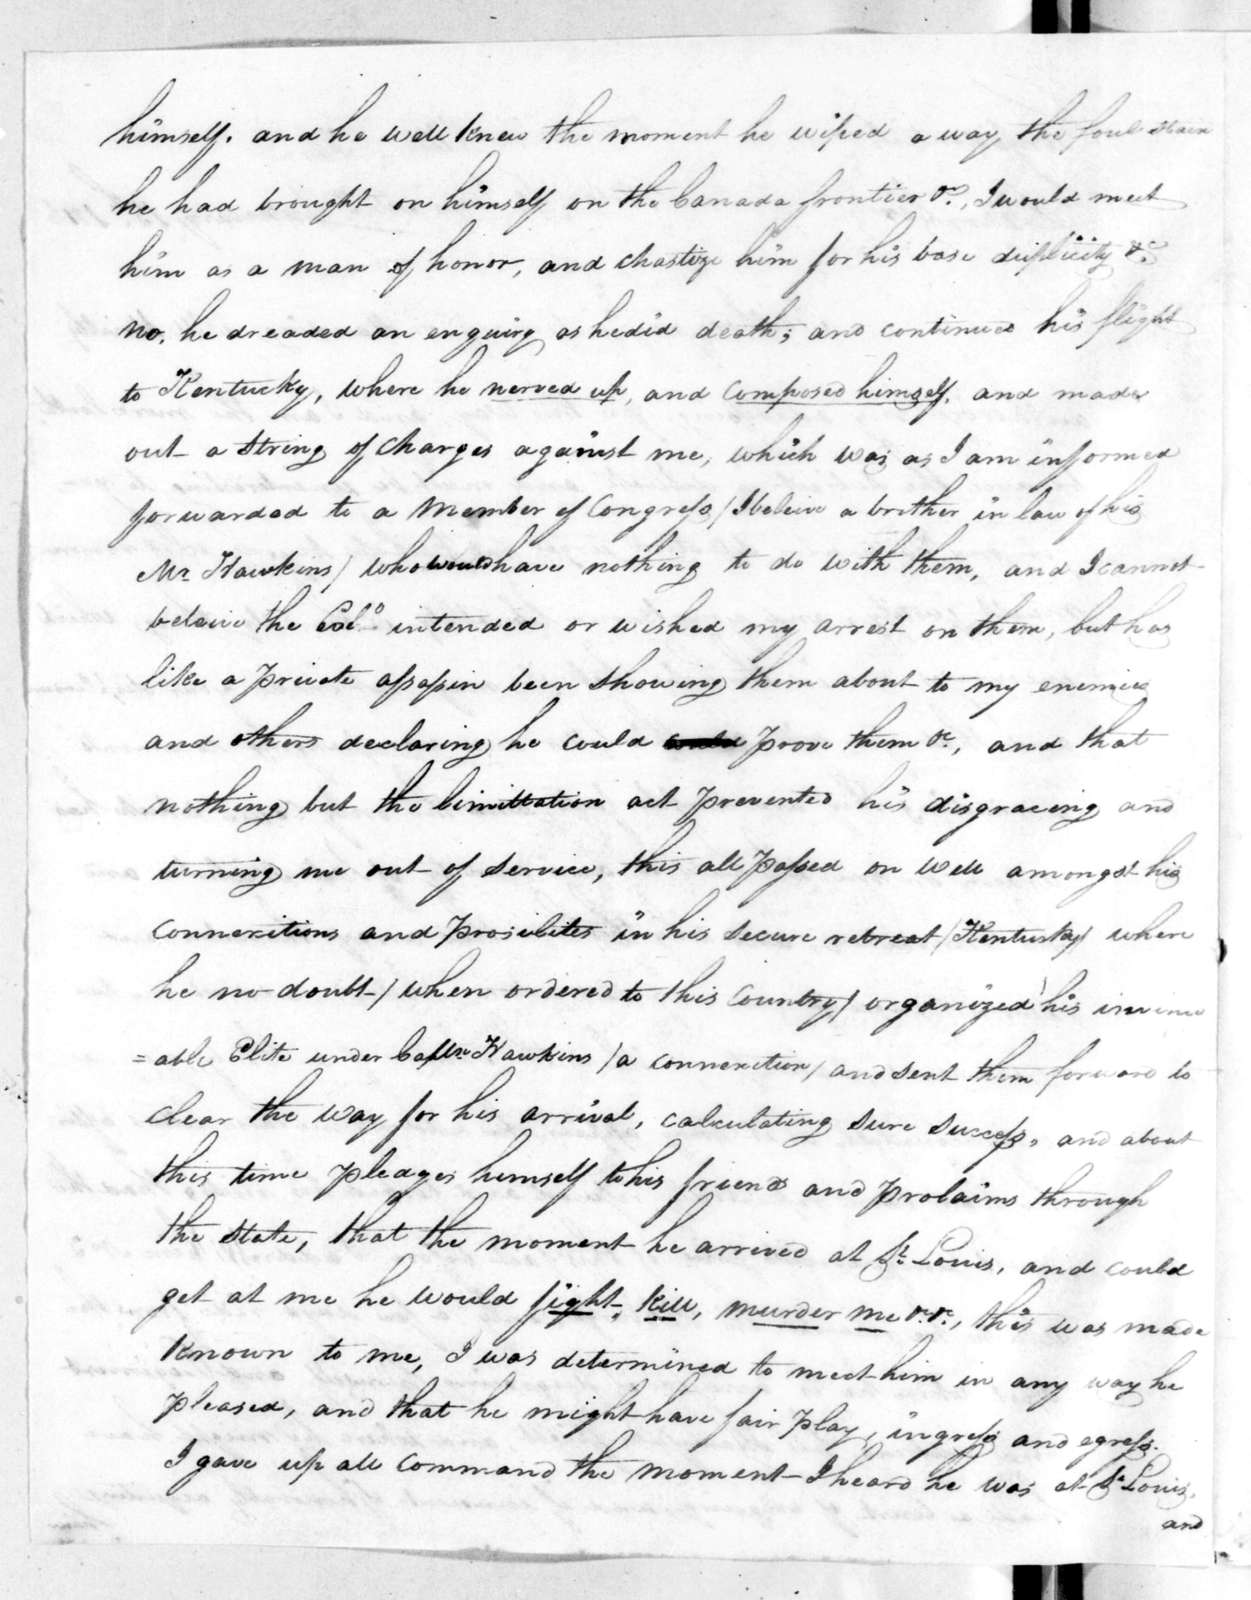 Daniel Bissell to Andrew Jackson, January 15, 1816